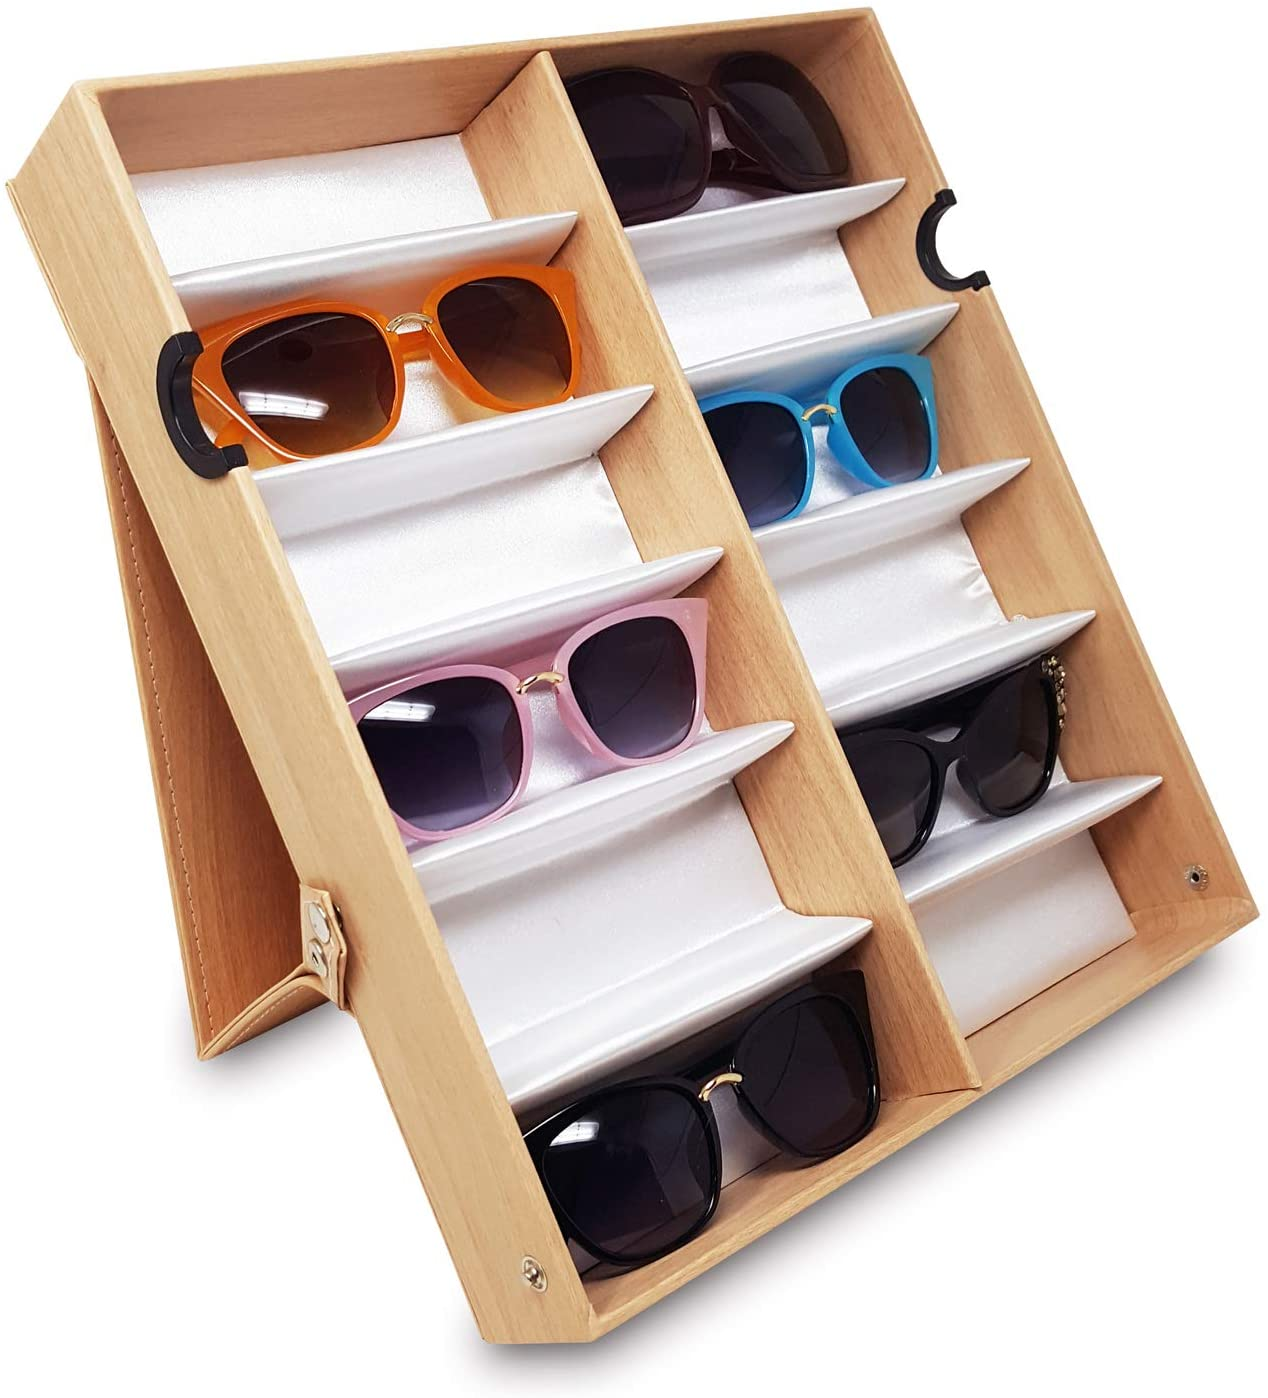 Ikee Design Eyewear Storage Organizer Box -12 Slots Sunglasses Box Display Tray Case Stand with Light Wood Pattern Cover for Eyeglasses, Watches and Jewelry, Oak, 19